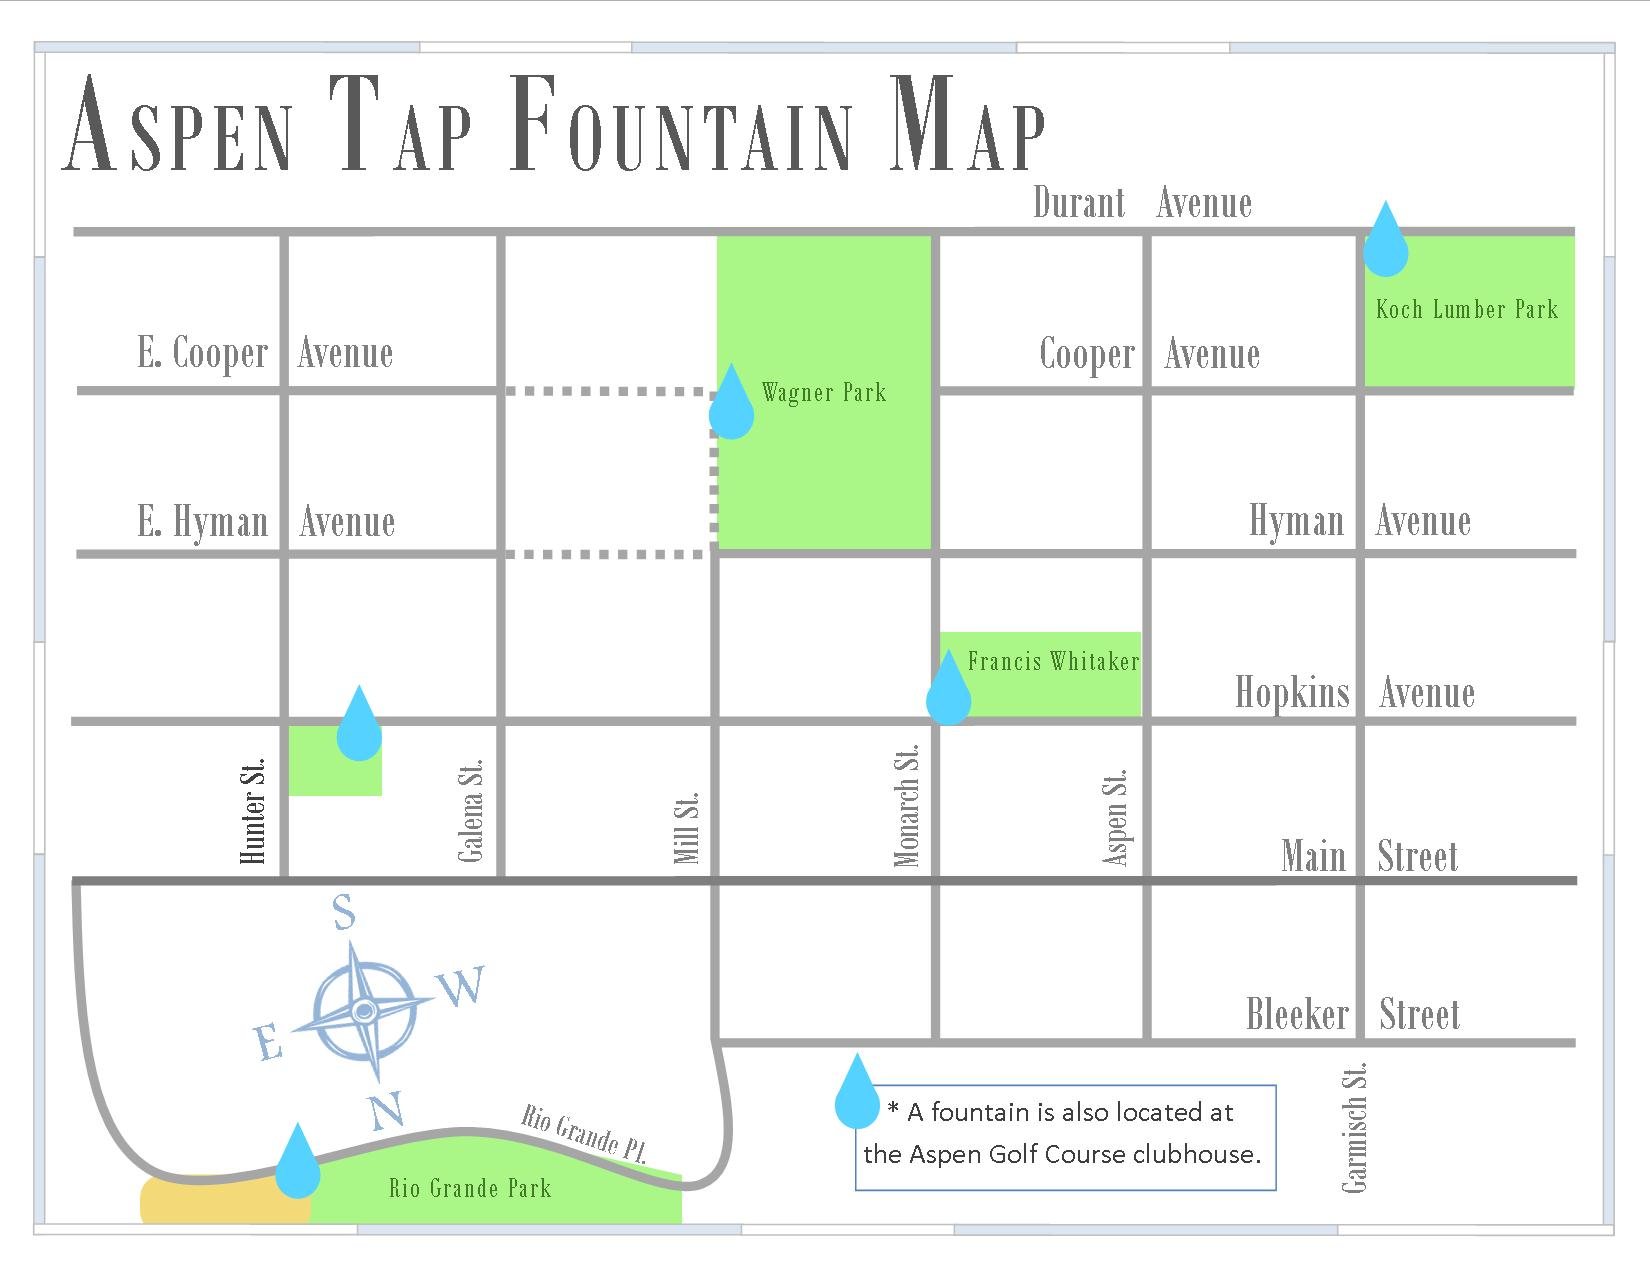 Water Aspen Tap Fountain Map